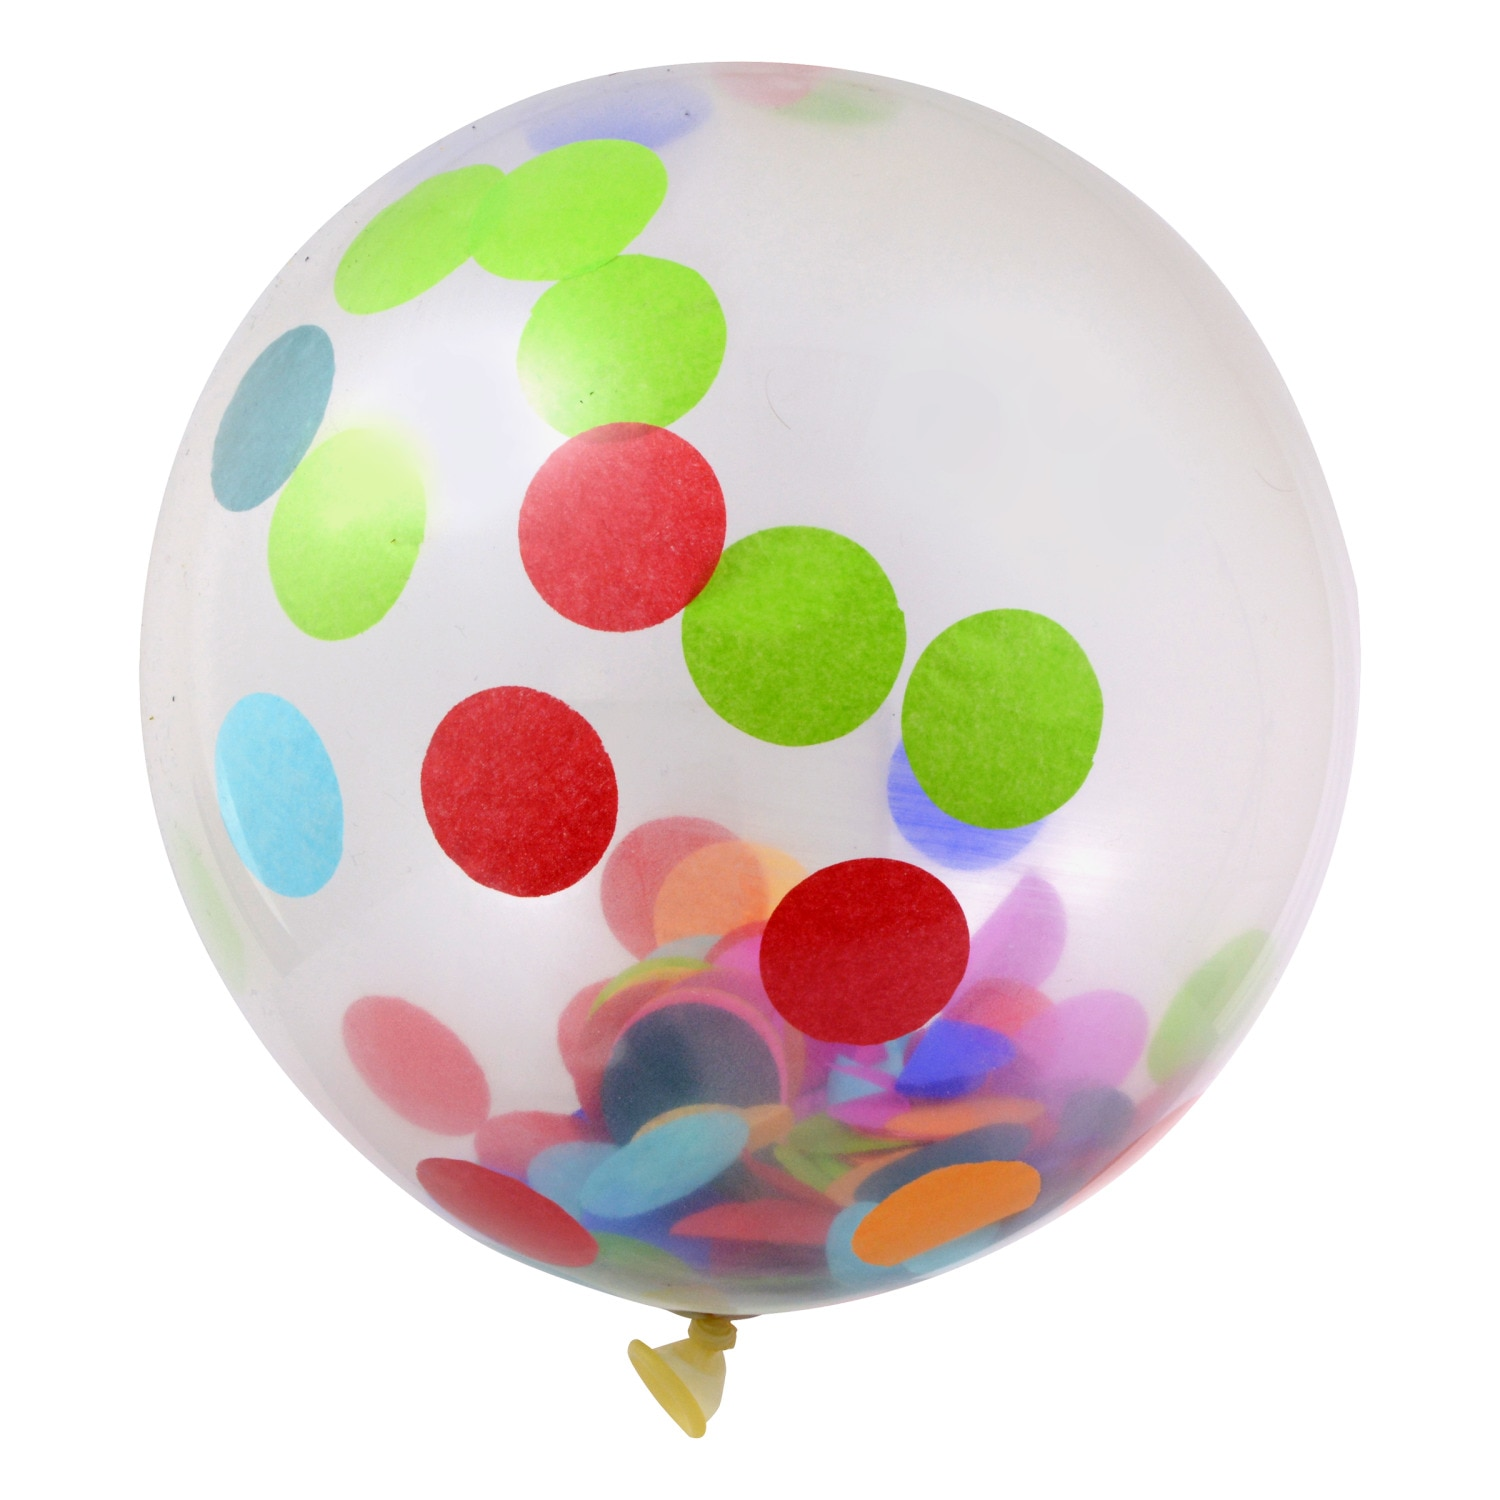 Details about  /Happy Birthday Confetti Balloon Party Supplies Printing Latex Balloons Set